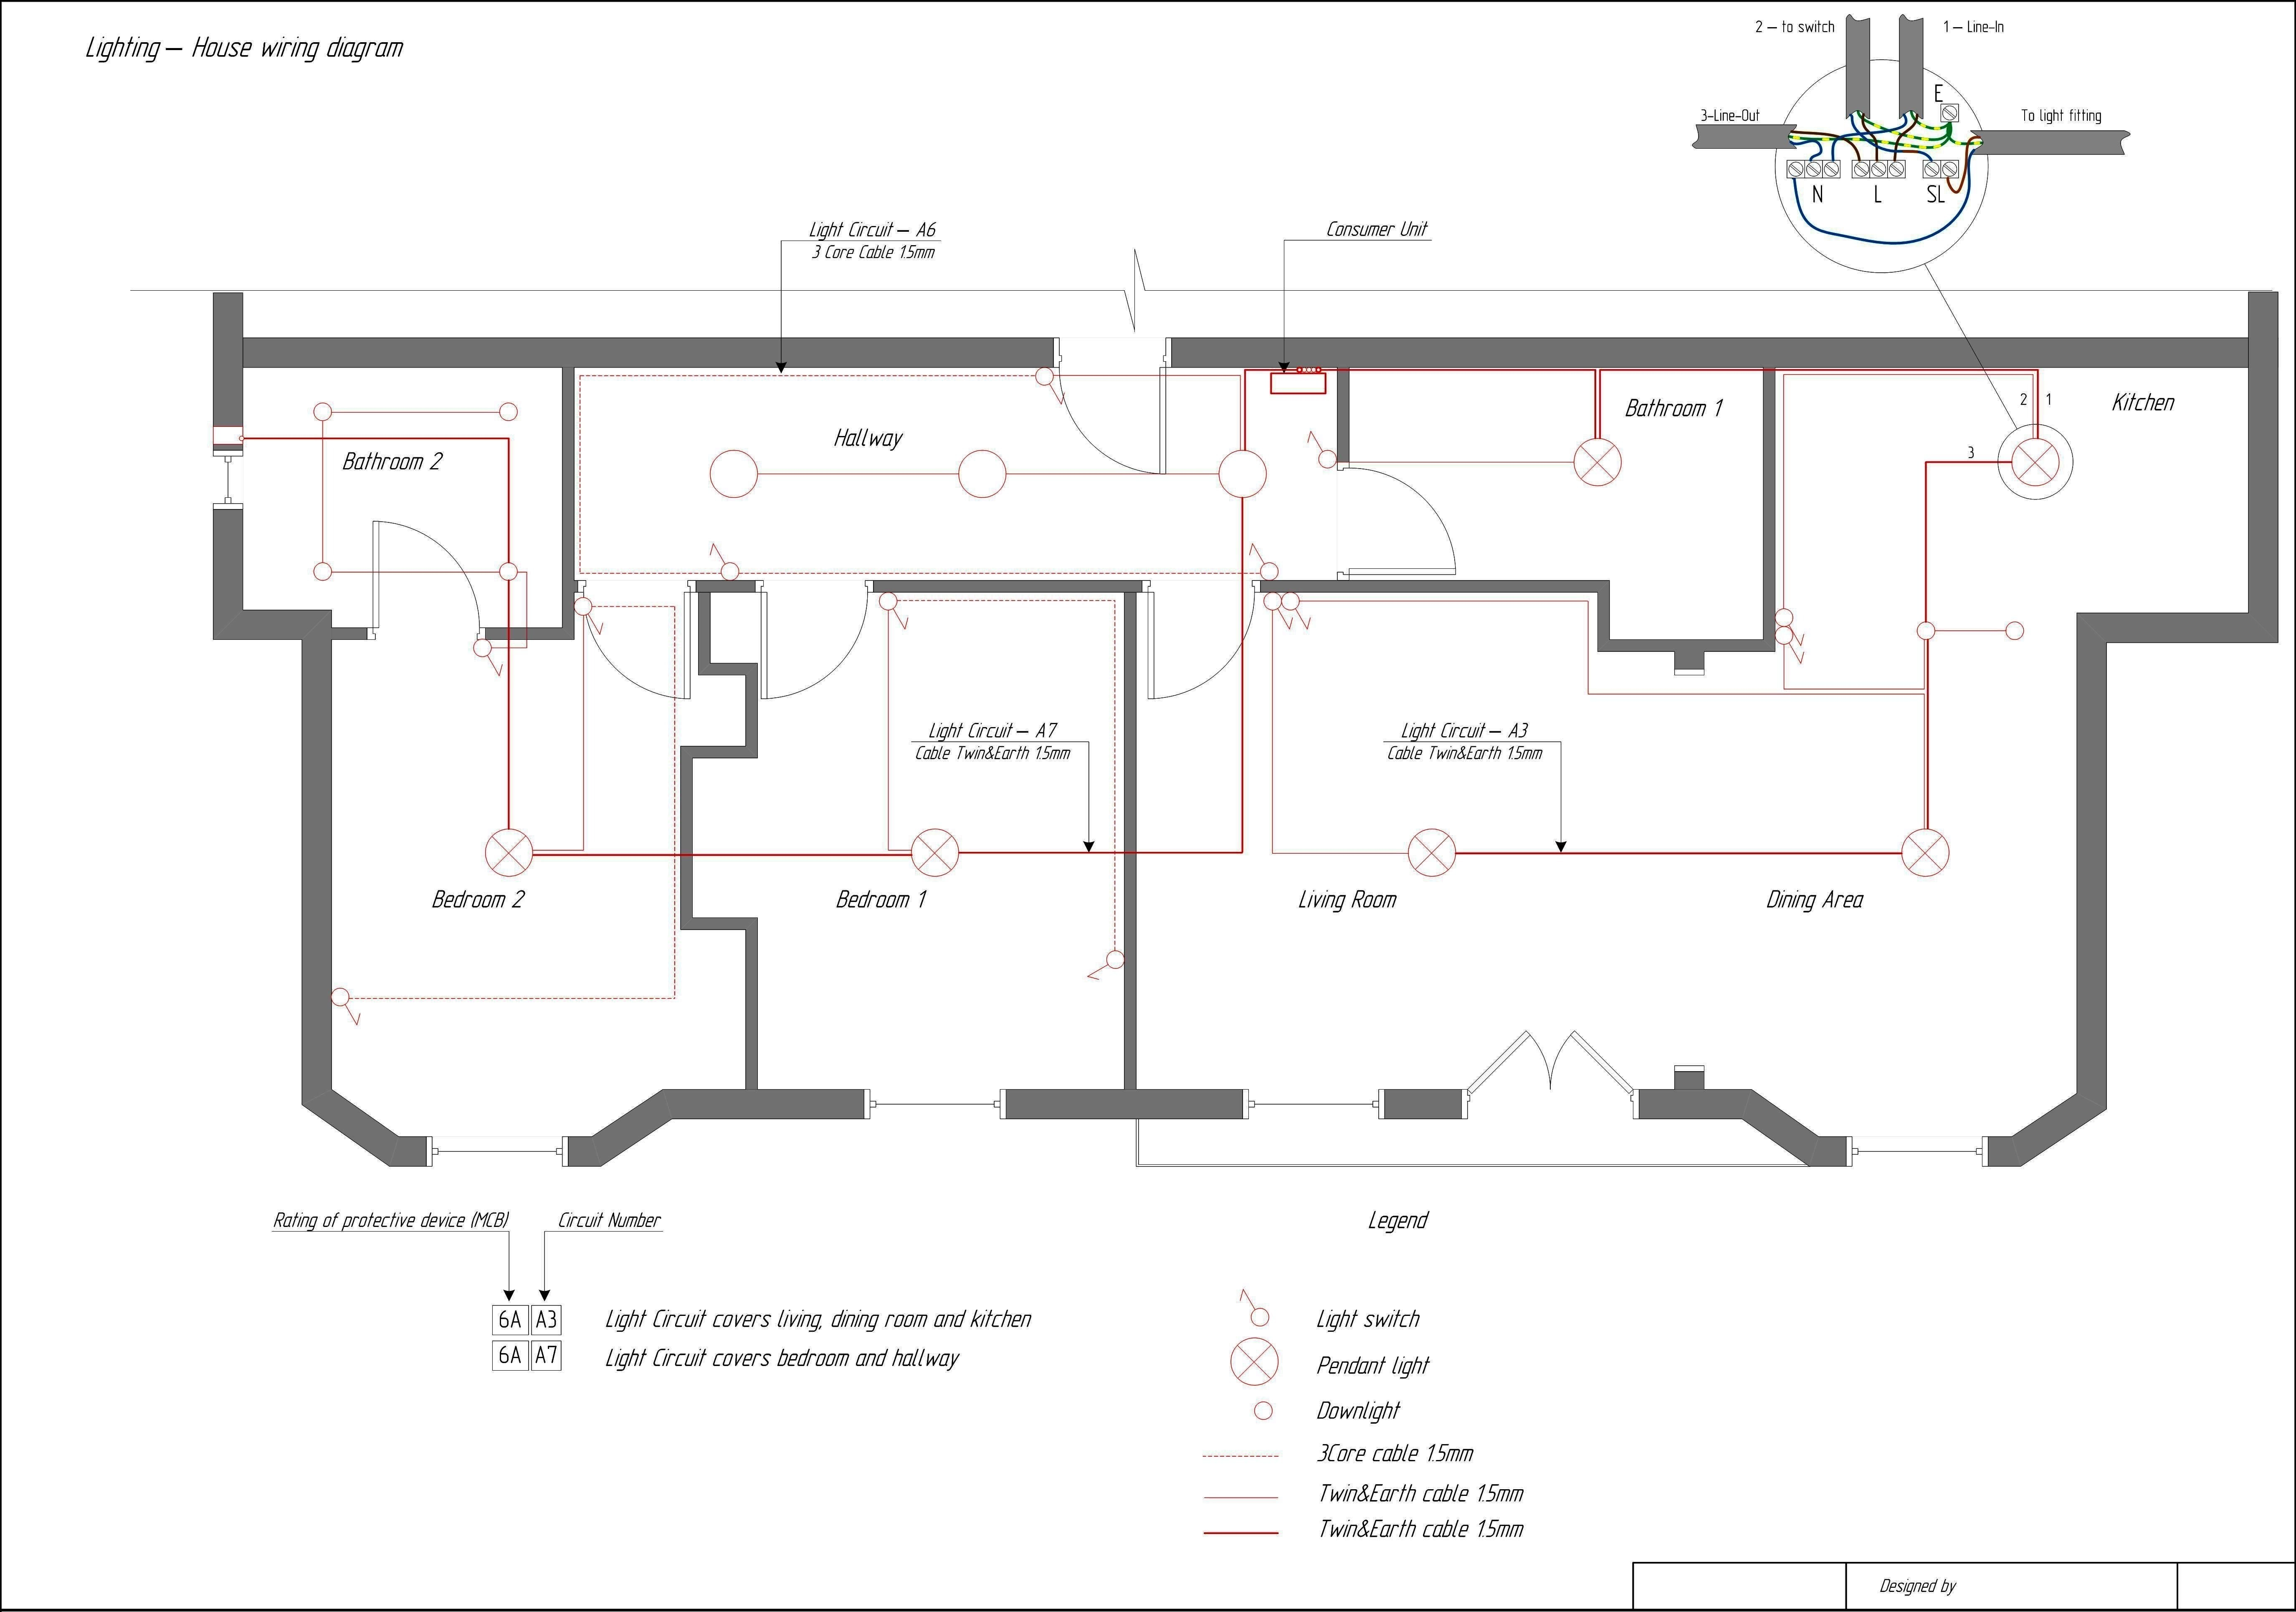 Electrical Diagram for House Inspirational House Wiring Diagram Electrical Floor Plan 2004 2010 Bmw X3 E83